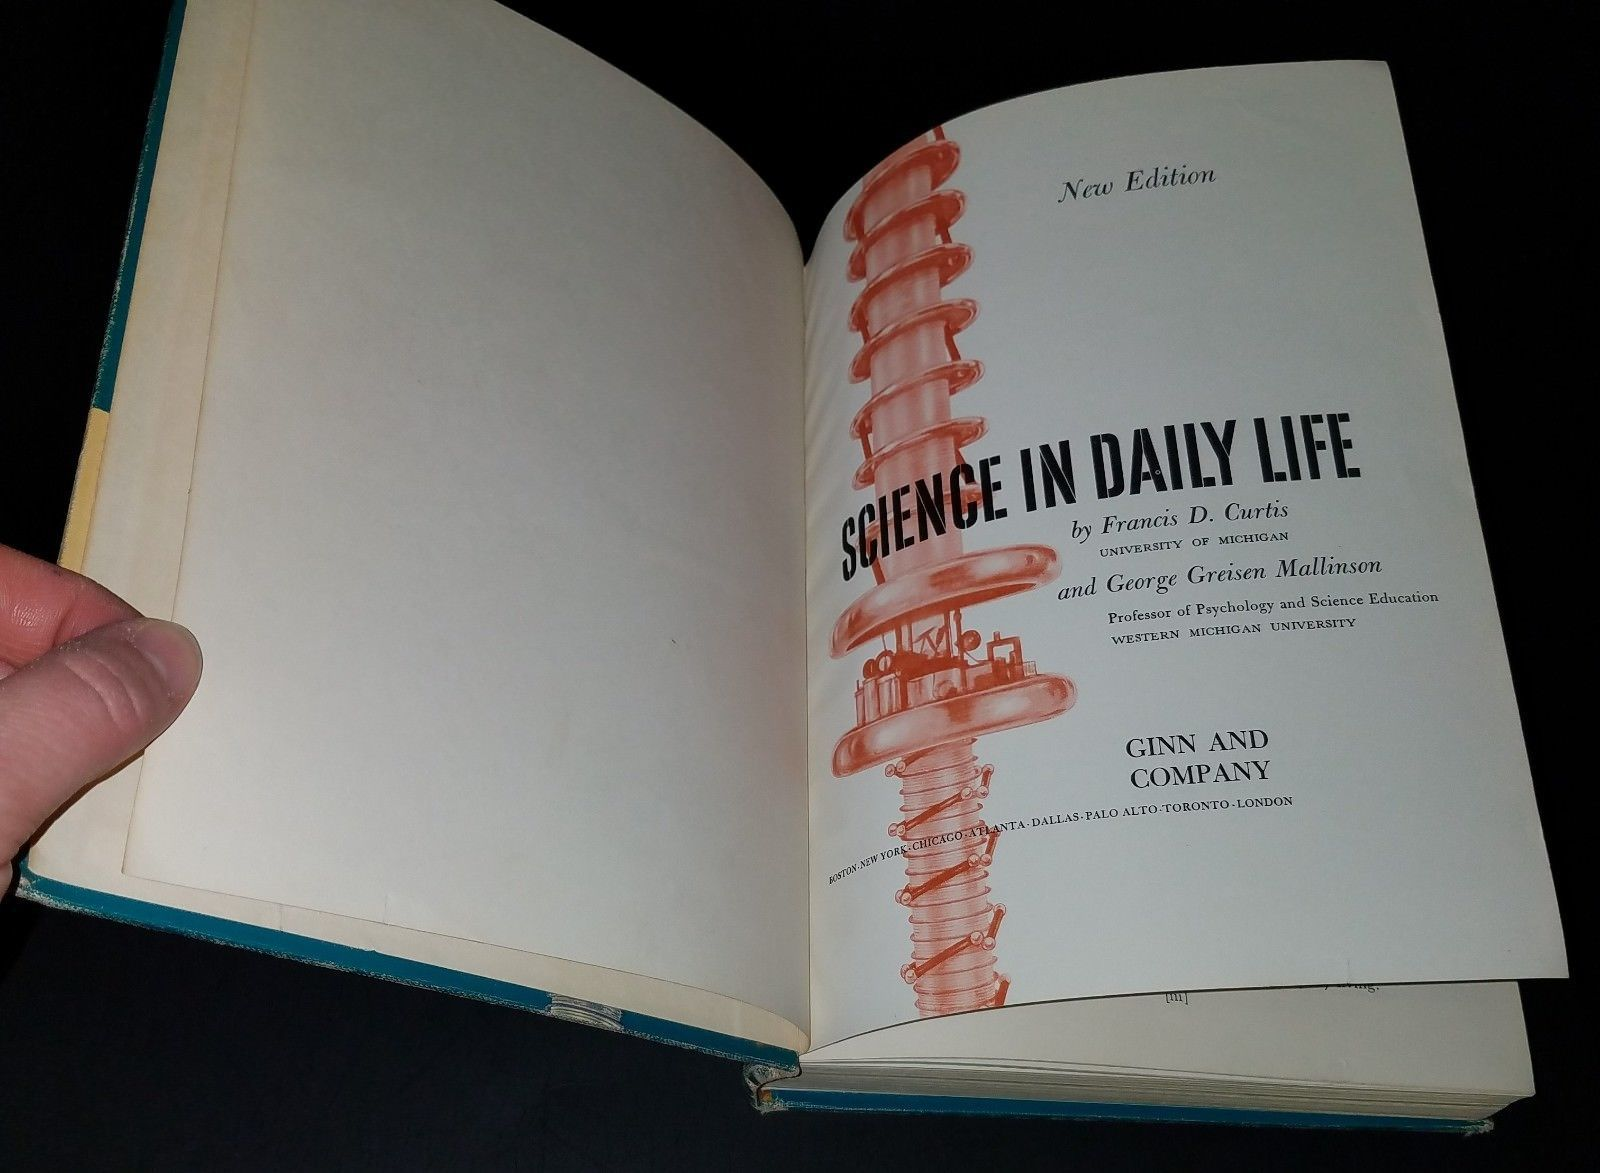 VTG Science in Daily Life Hardcover Book 1958 Francis Curtis George Mallinson